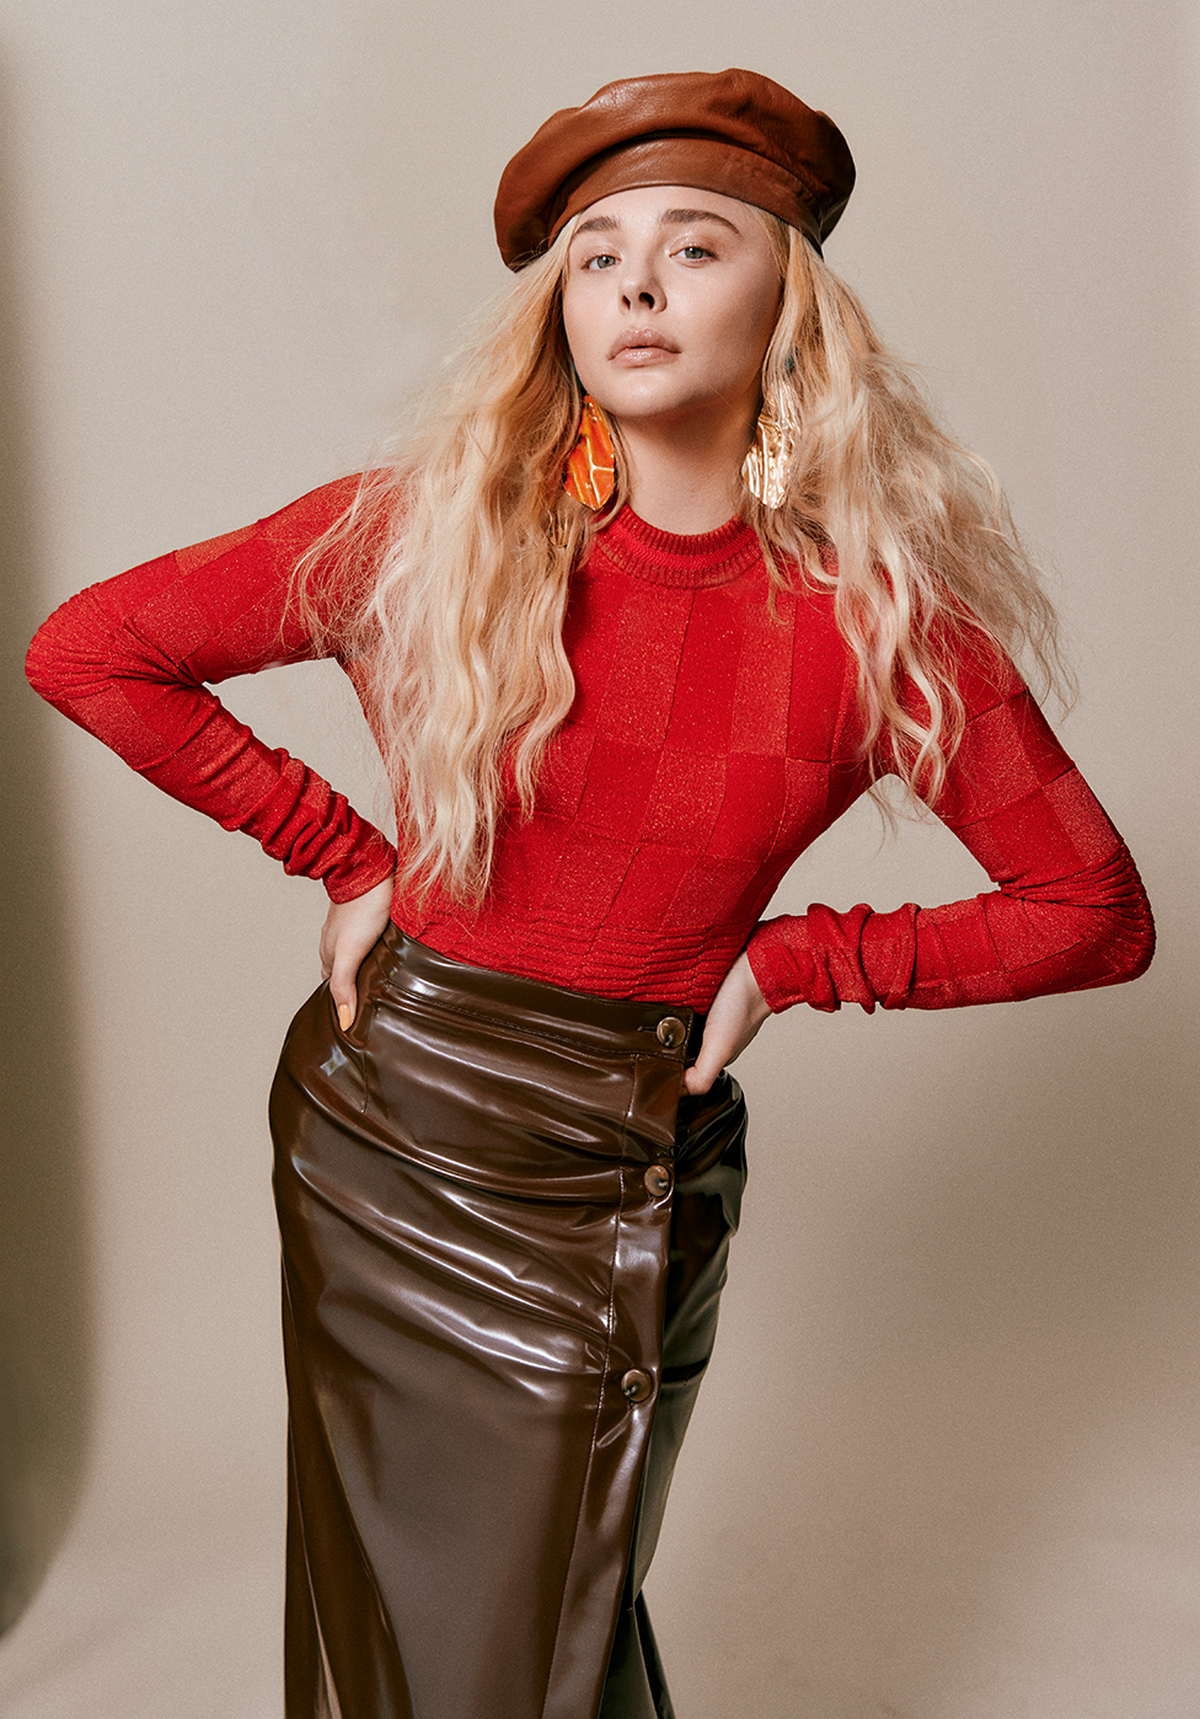 Chloë-Grace-Moretz-Photographed-by-Harper-Smith-for-Who-Wat-Wear-201800008.jpg